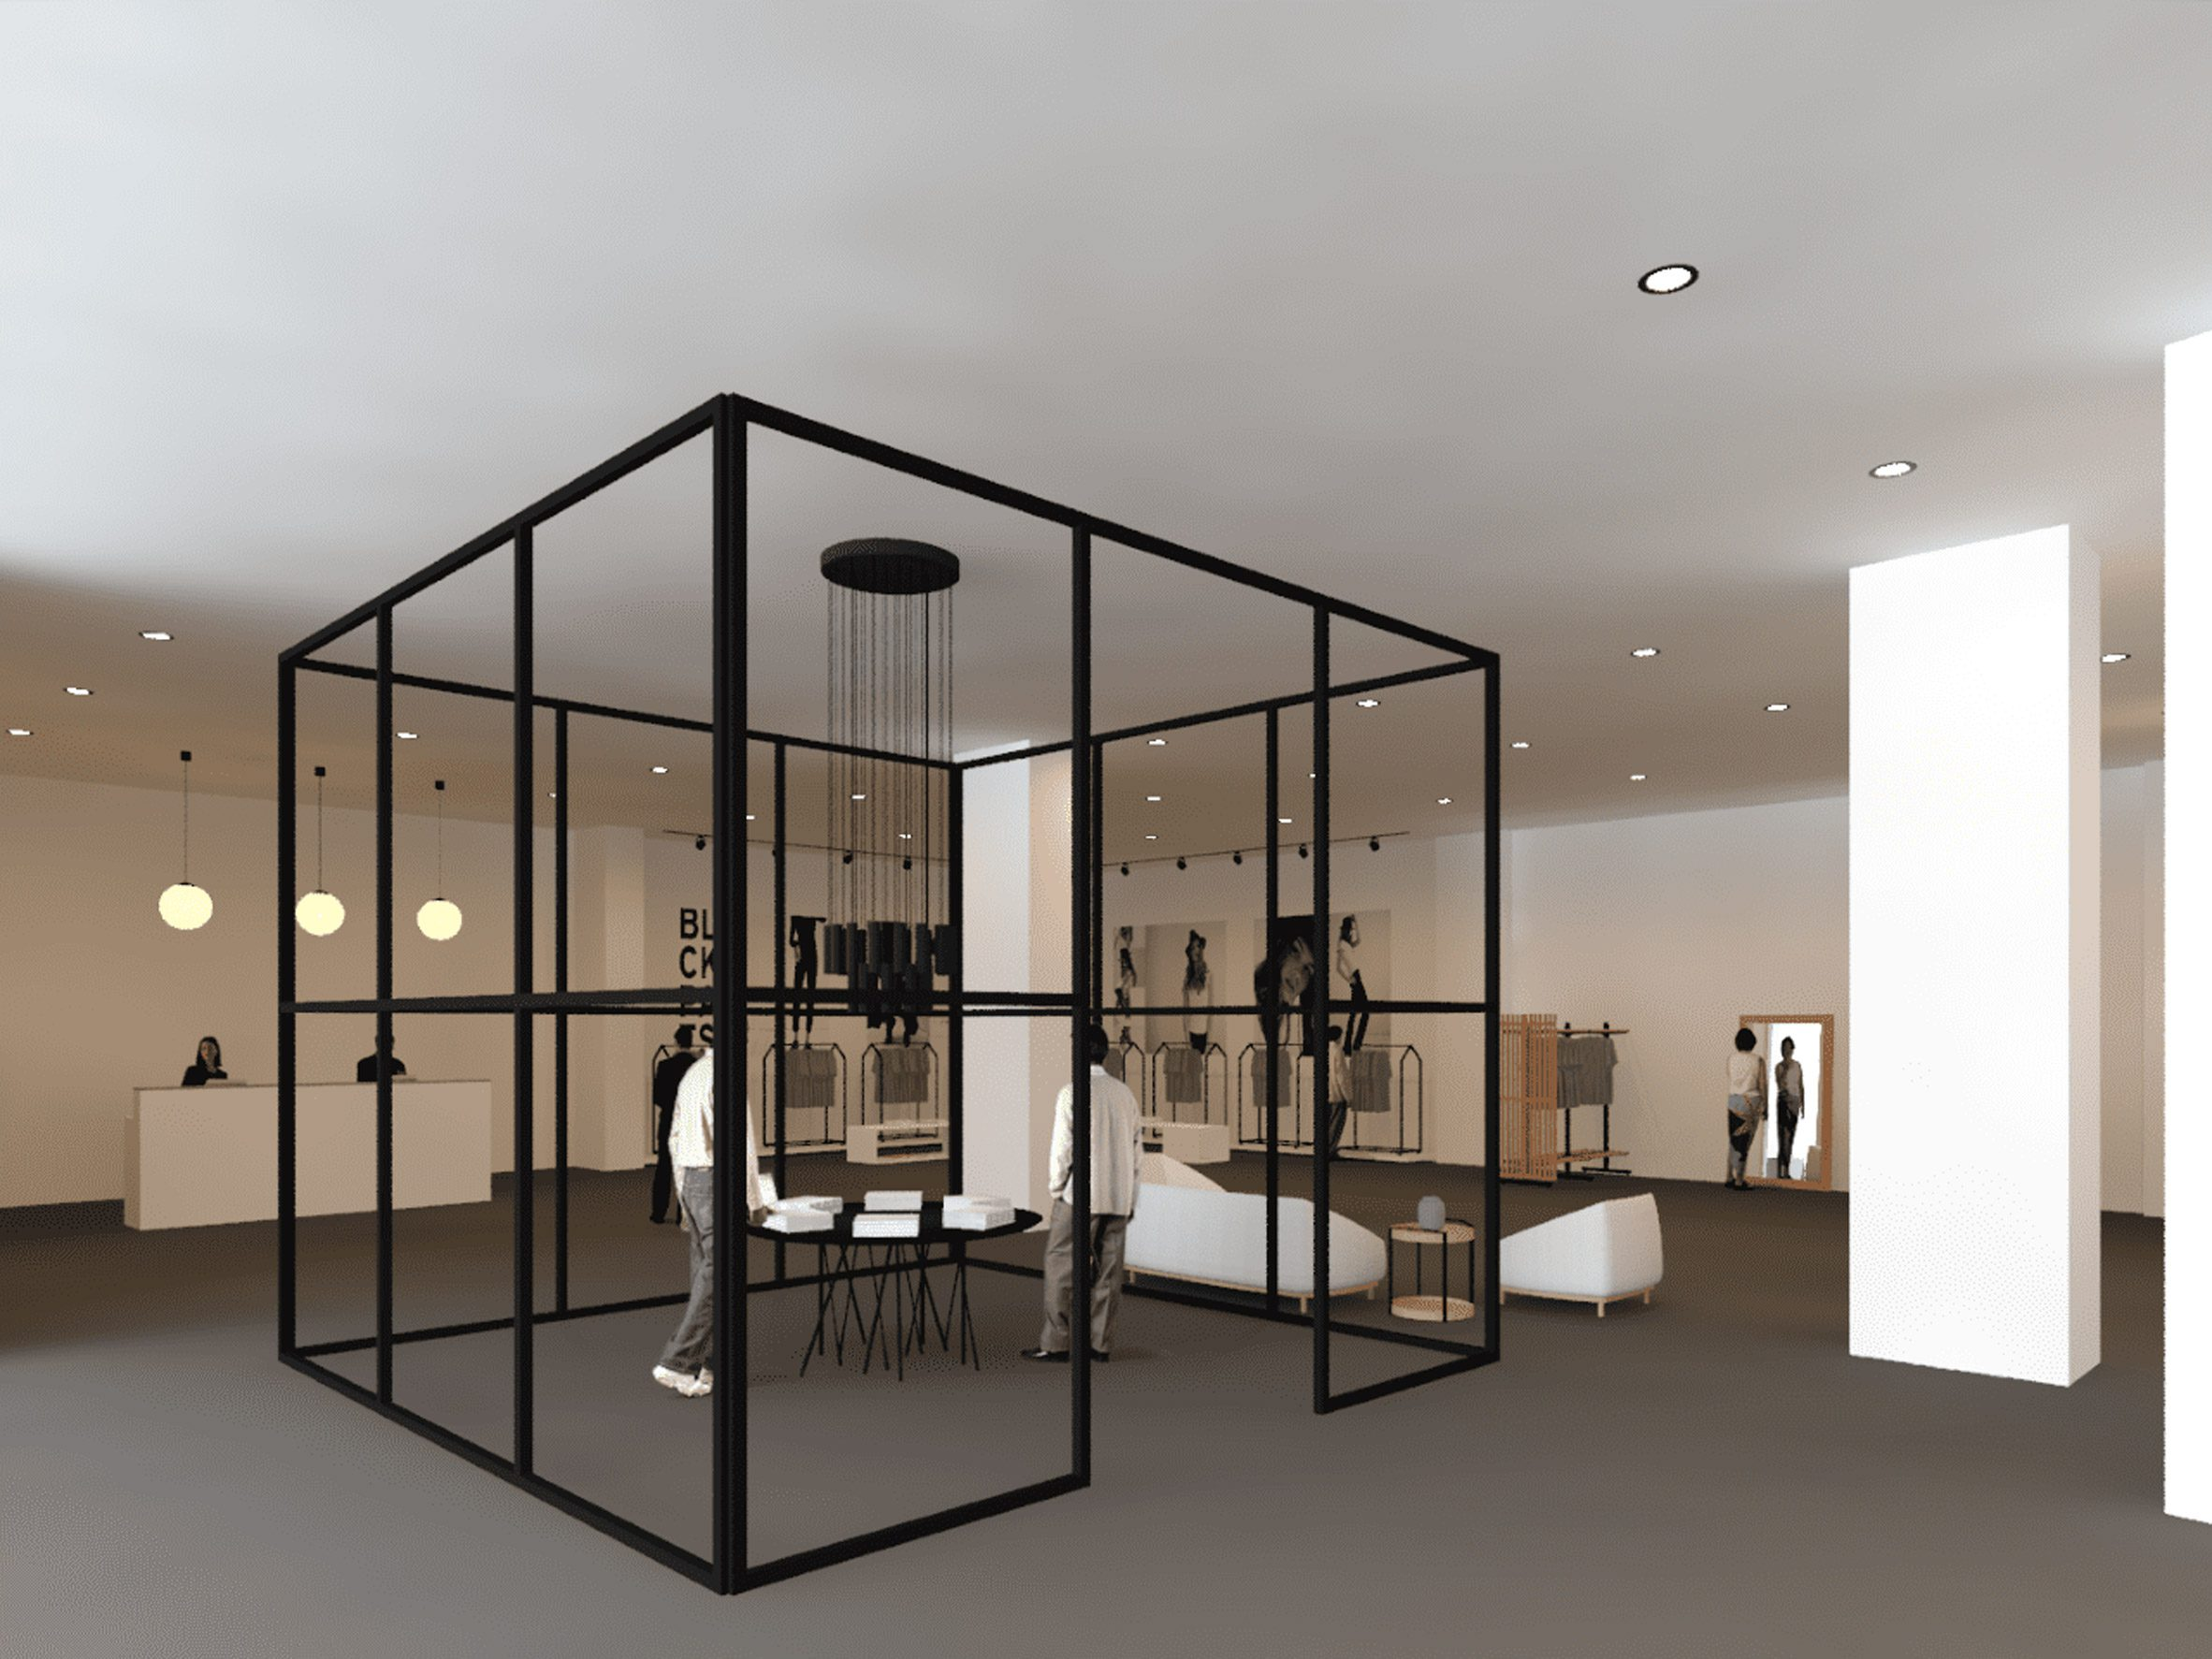 A cafe based on European designs. It has a box-like black structure with neutral products